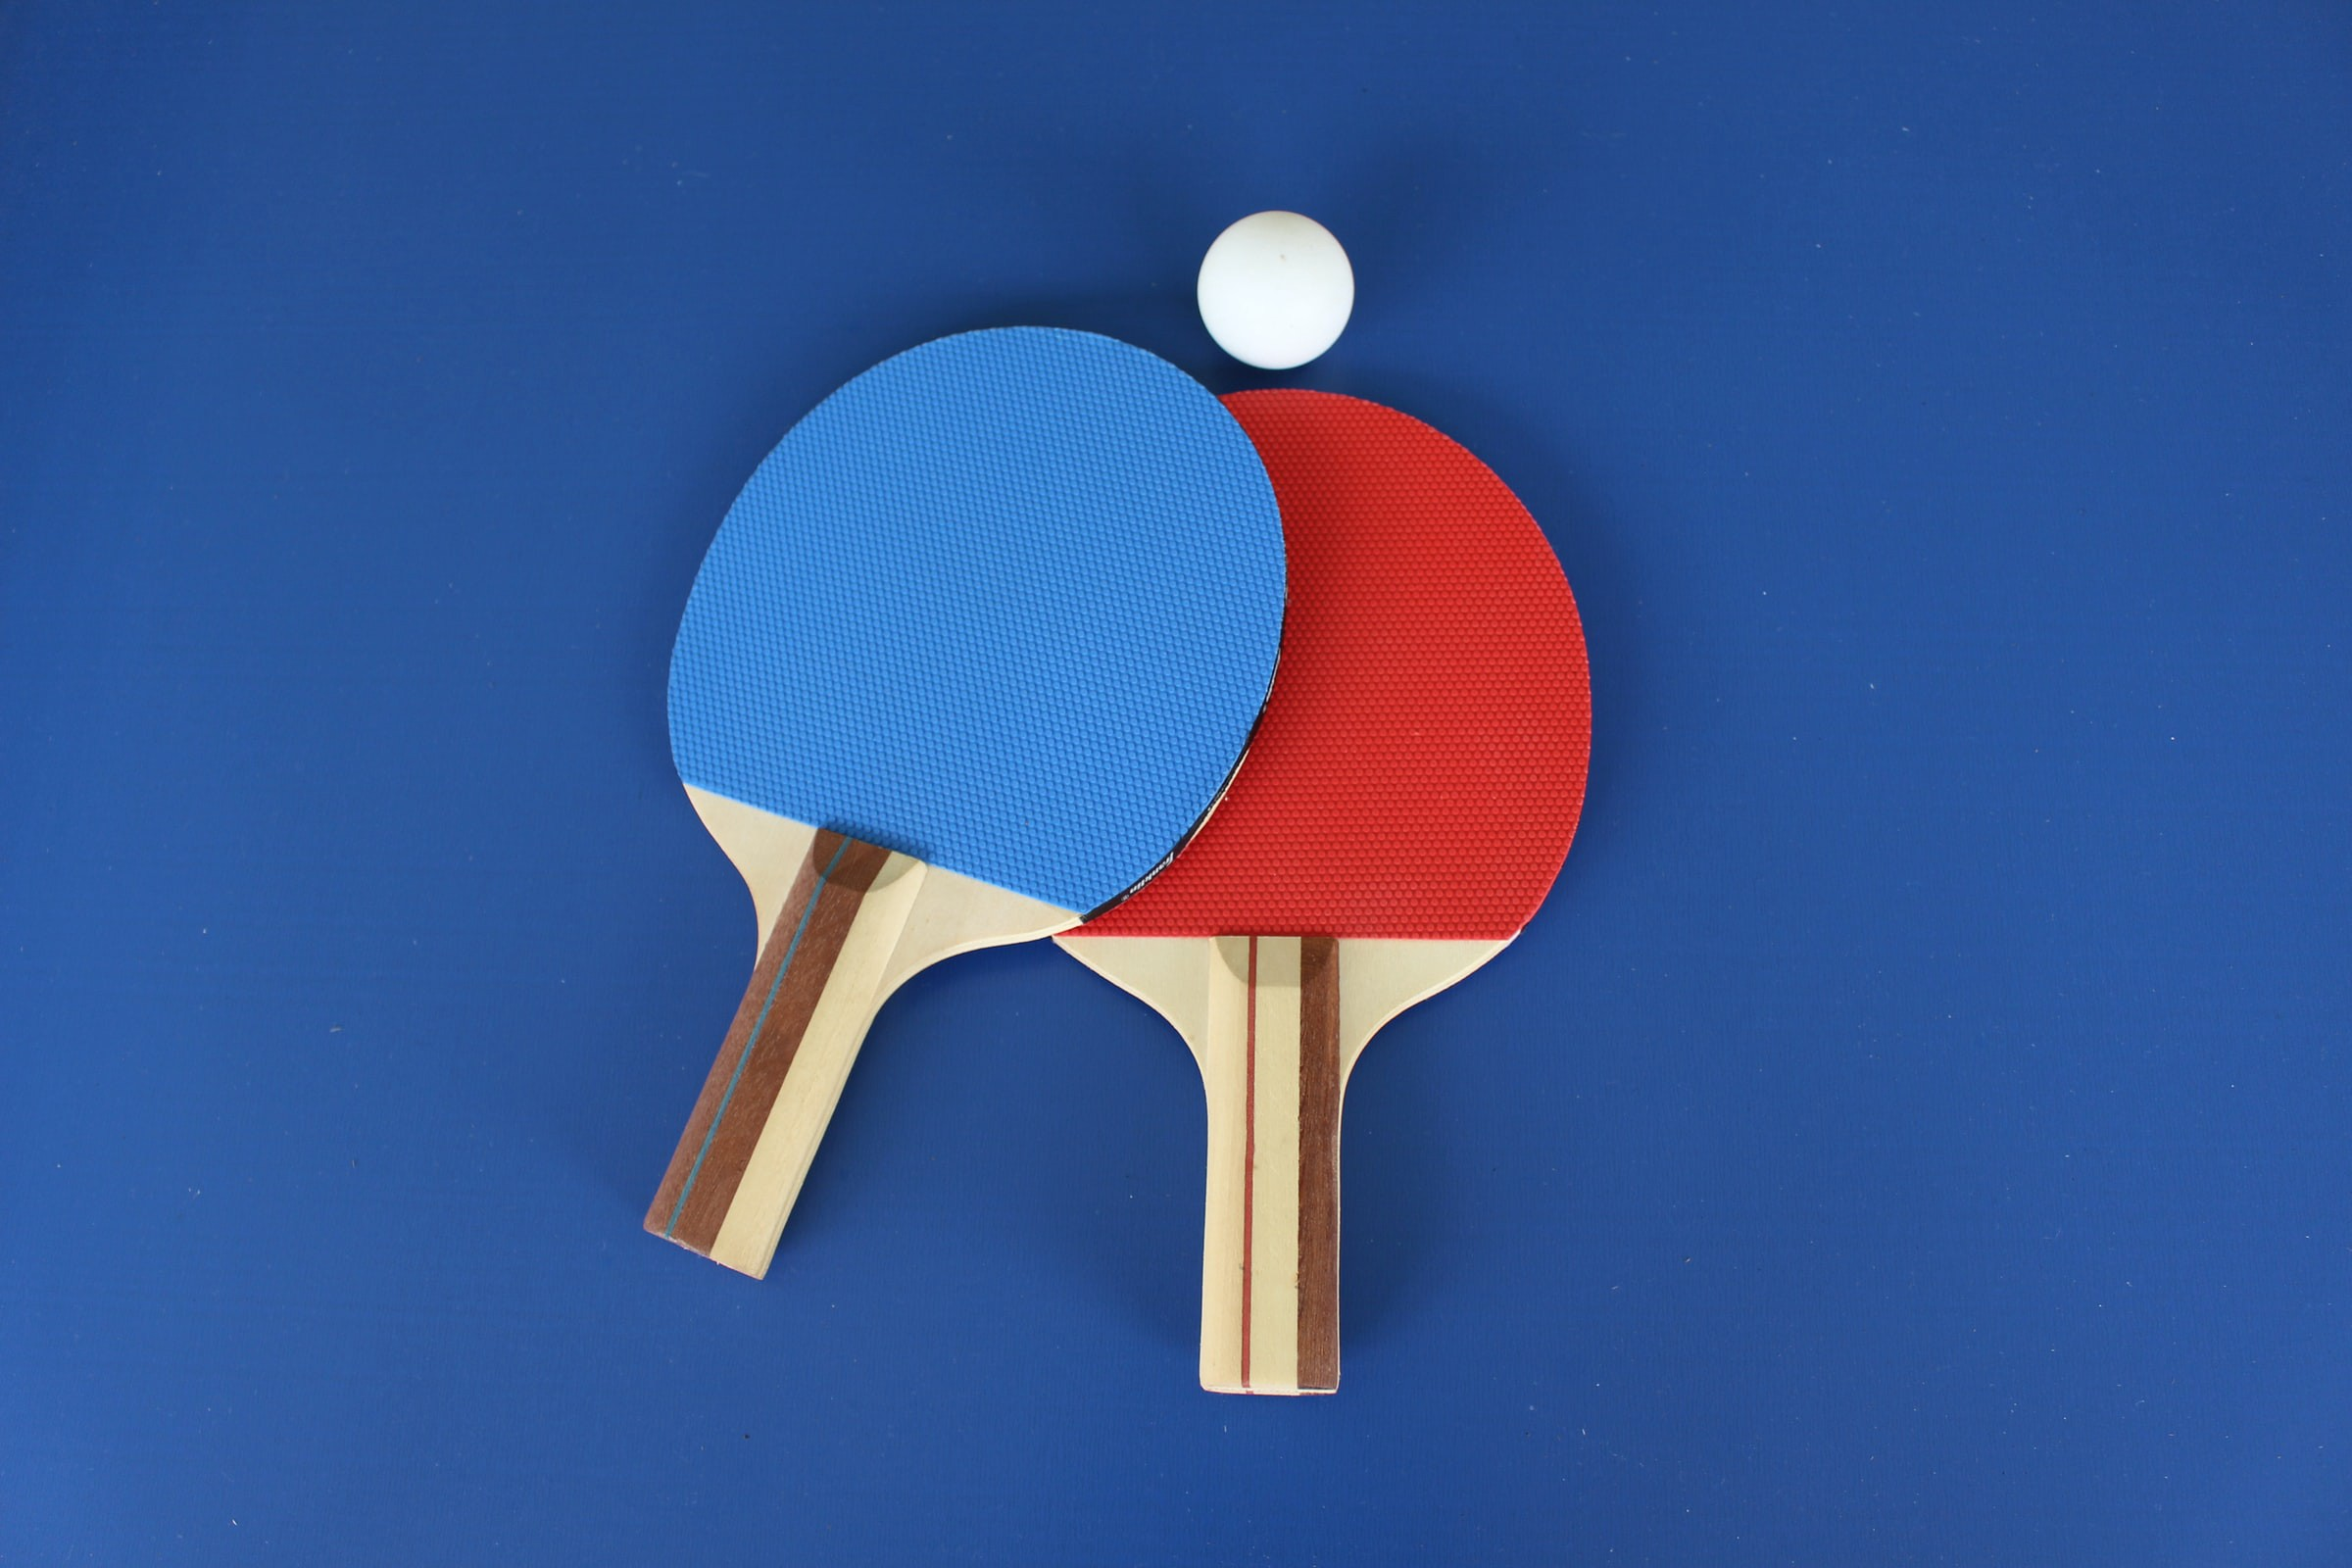 Red and blue ping pong paddles